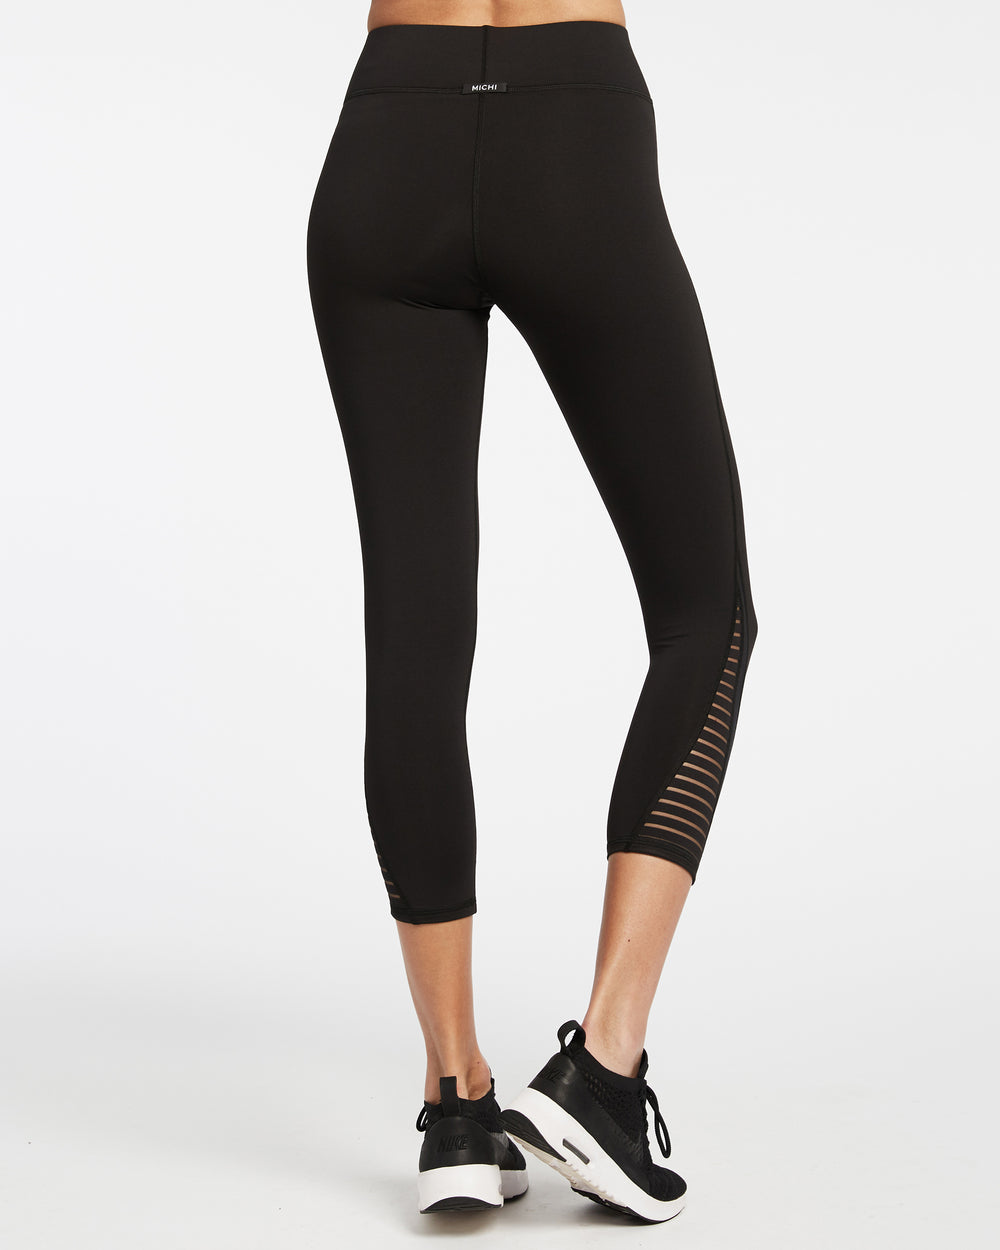 Apex Crop Legging - Black